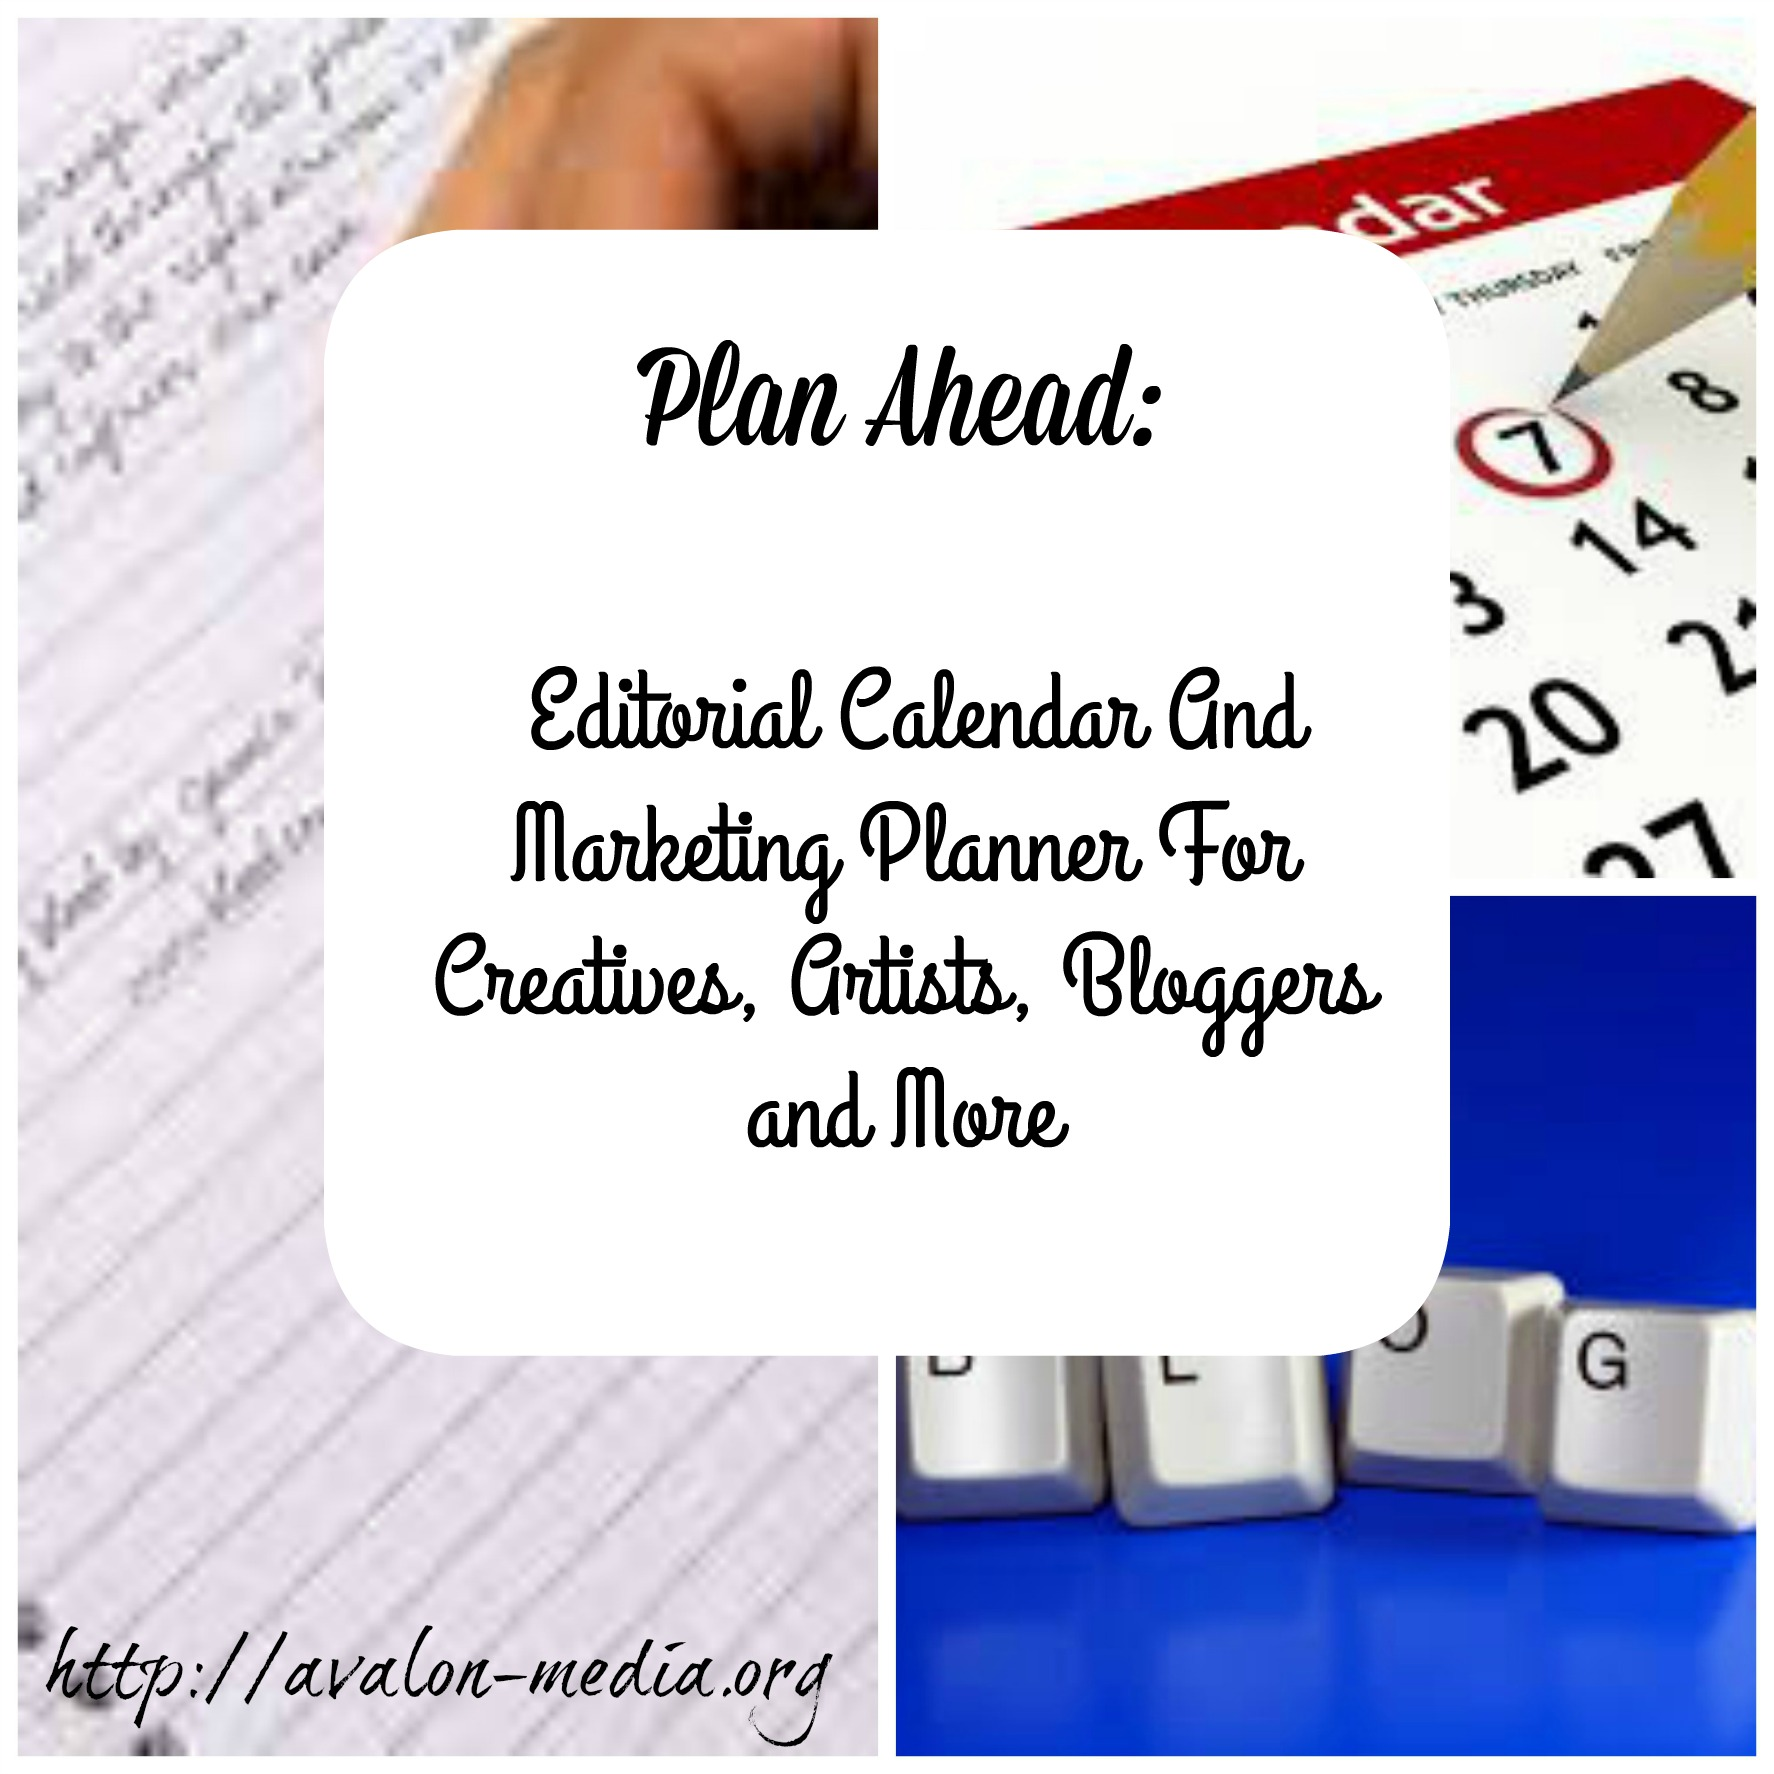 Plan Ahead - Free Editorial Calendar